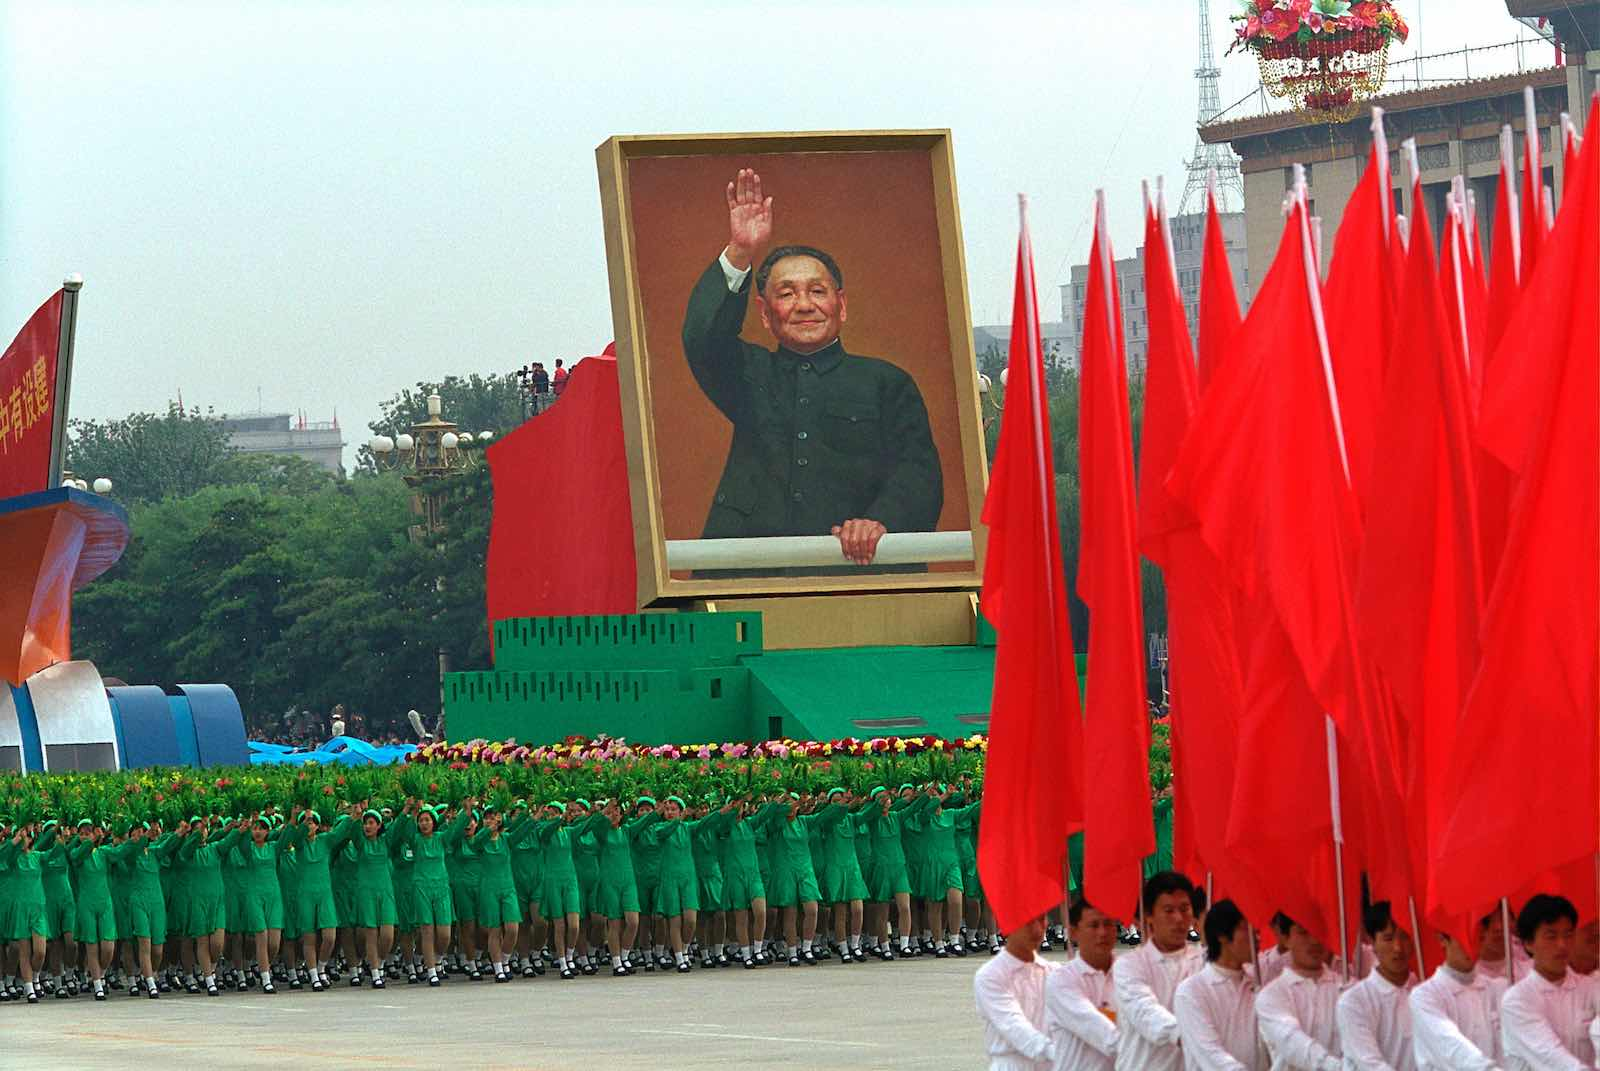 A portrait of Deng Xiaoping is displayed during a parade marking the 50th anniversary of the People' s Republic of China, Tiananmen Square, Beijing, 1 October 1999 (Photo: David Hume Kennerly/Getty Images)